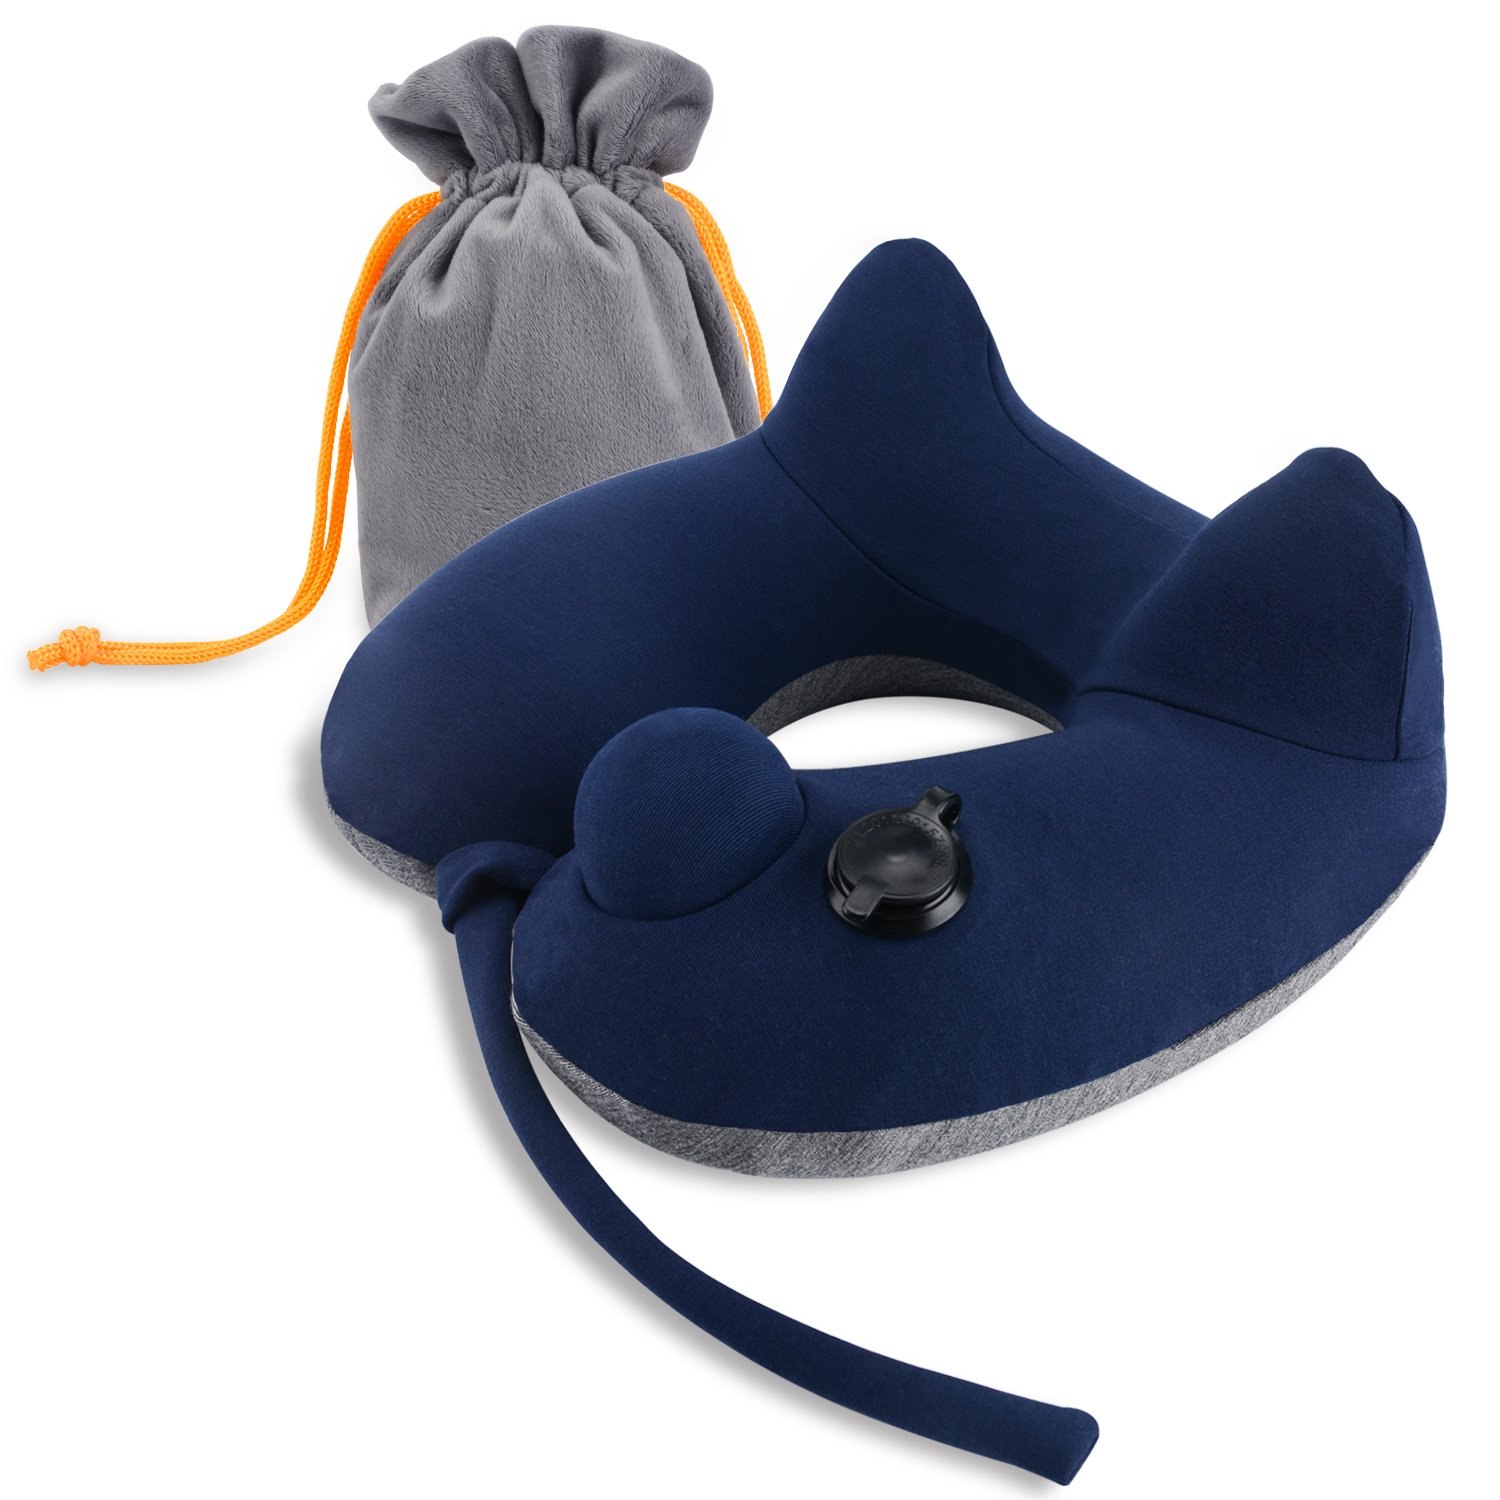 VARANO [Sale] Inflatable U-shaped Neck Pillow by, Ergonomic Travel Pillow with 3D hump Modeling Design for Better Neck Support, Effectively Relieving Neck Fatigue